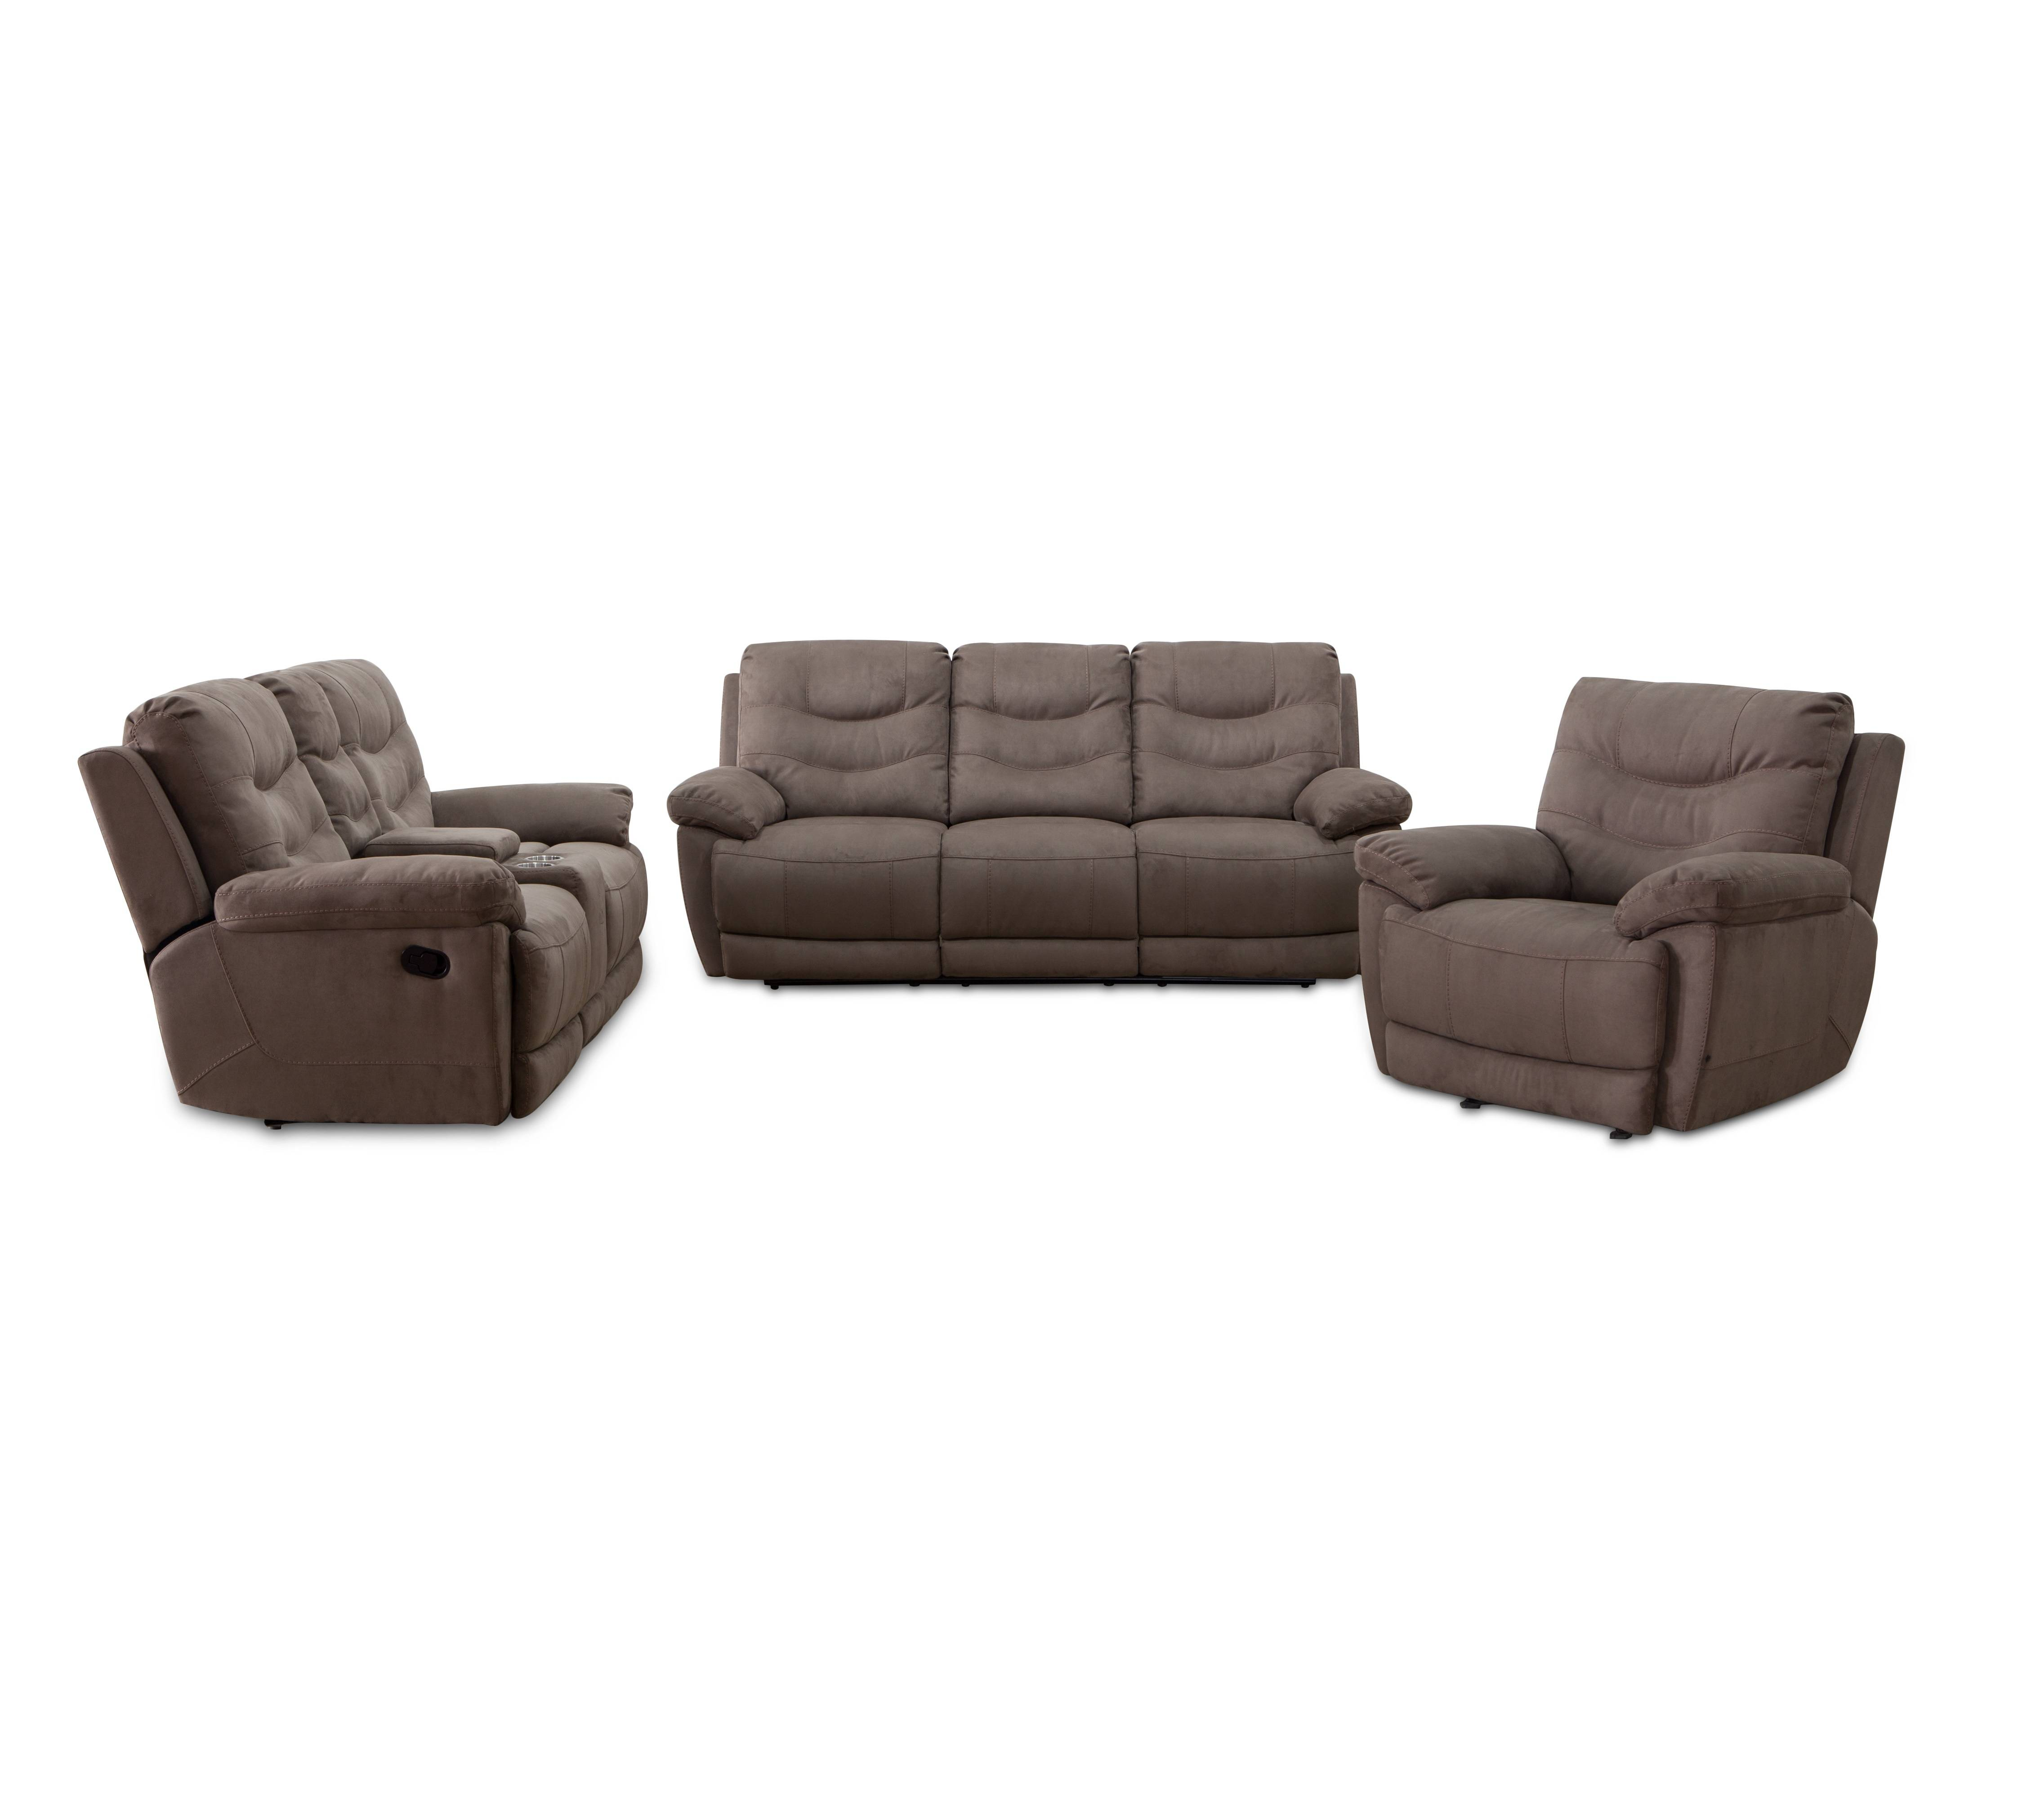 Modern American Style 1+2+3 Fabric Motion Recliner Sofa